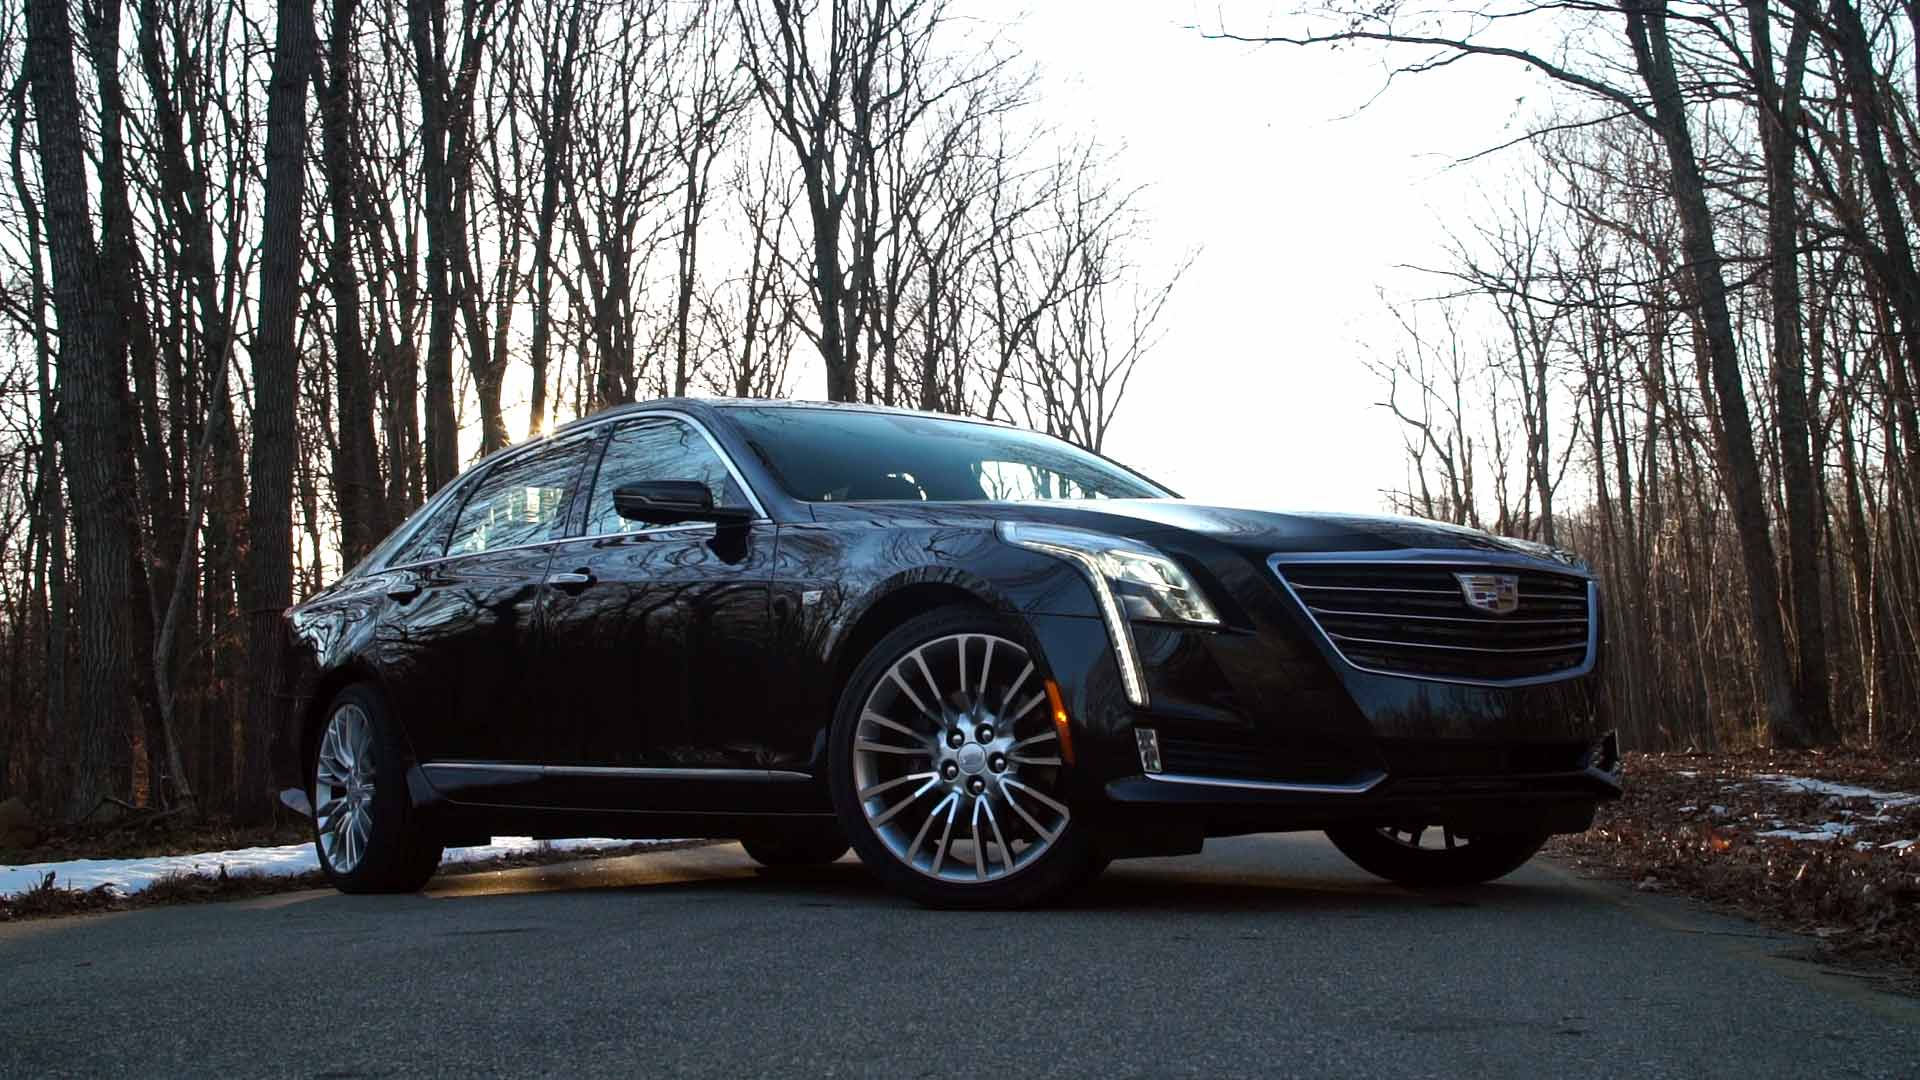 Baby cribs reviews consumer reports - The Plush High Tech Flagship Sedan Boasts Performance And Panache 2016 Cadillac Ct6 Review